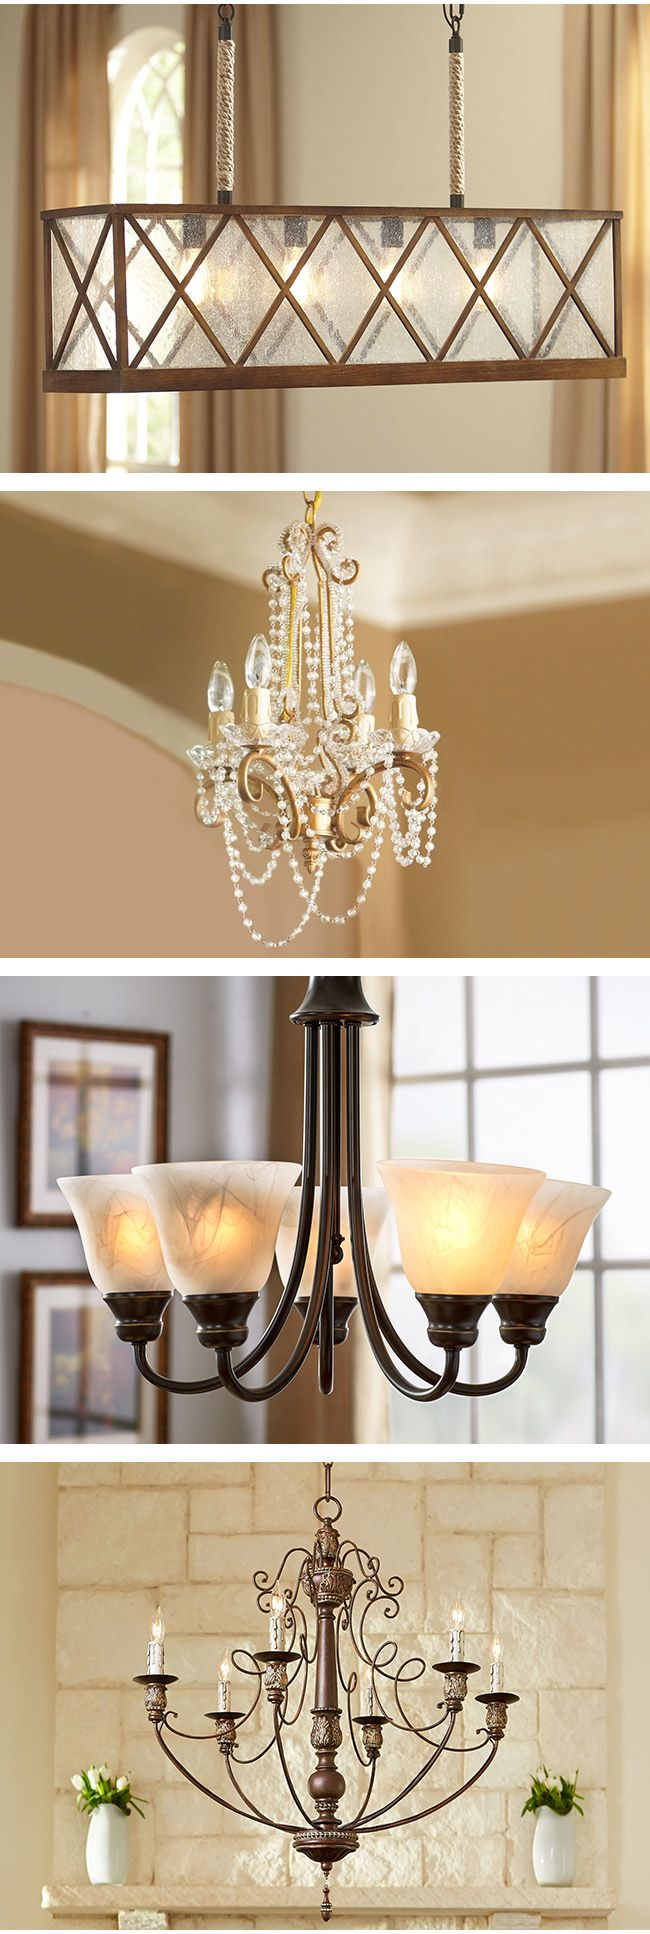 Small 4 Lights Glass Chandeliers | Ashley Furniture HomeStore